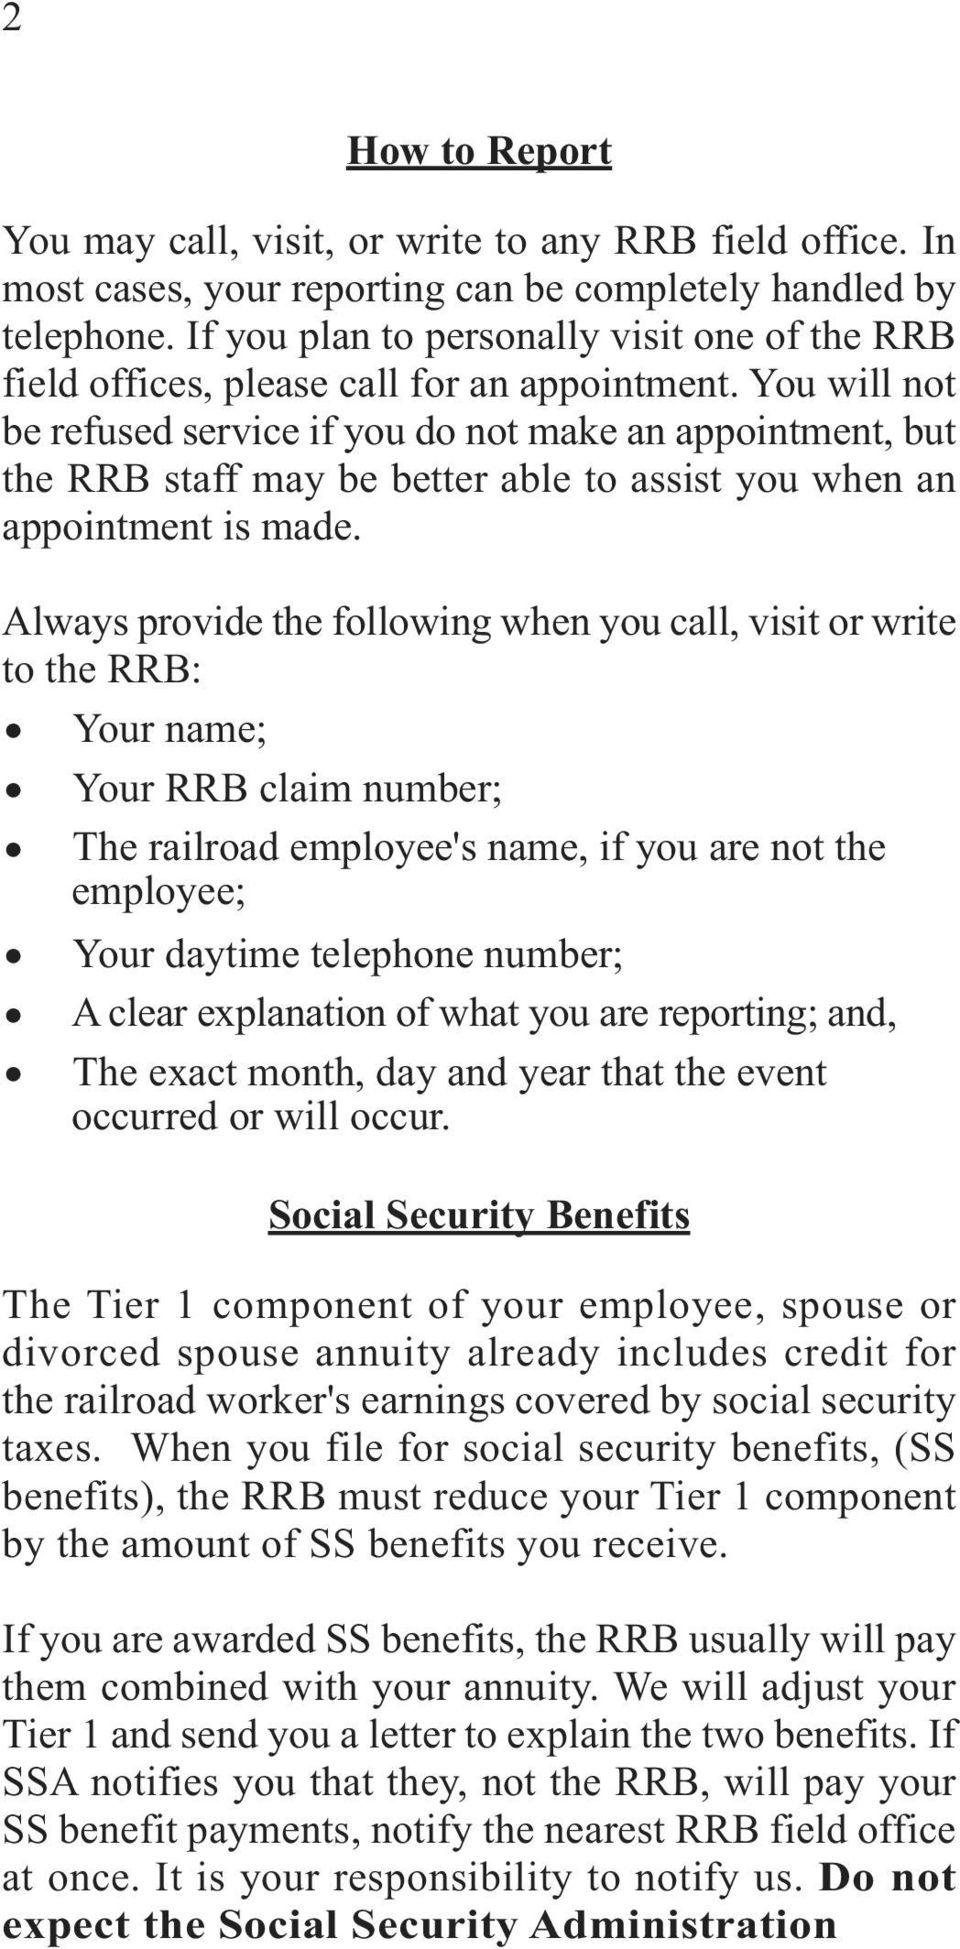 You will not be refused service if you do not make an appointment, but the RRB staff may be better able to assist you when an appointment is made.